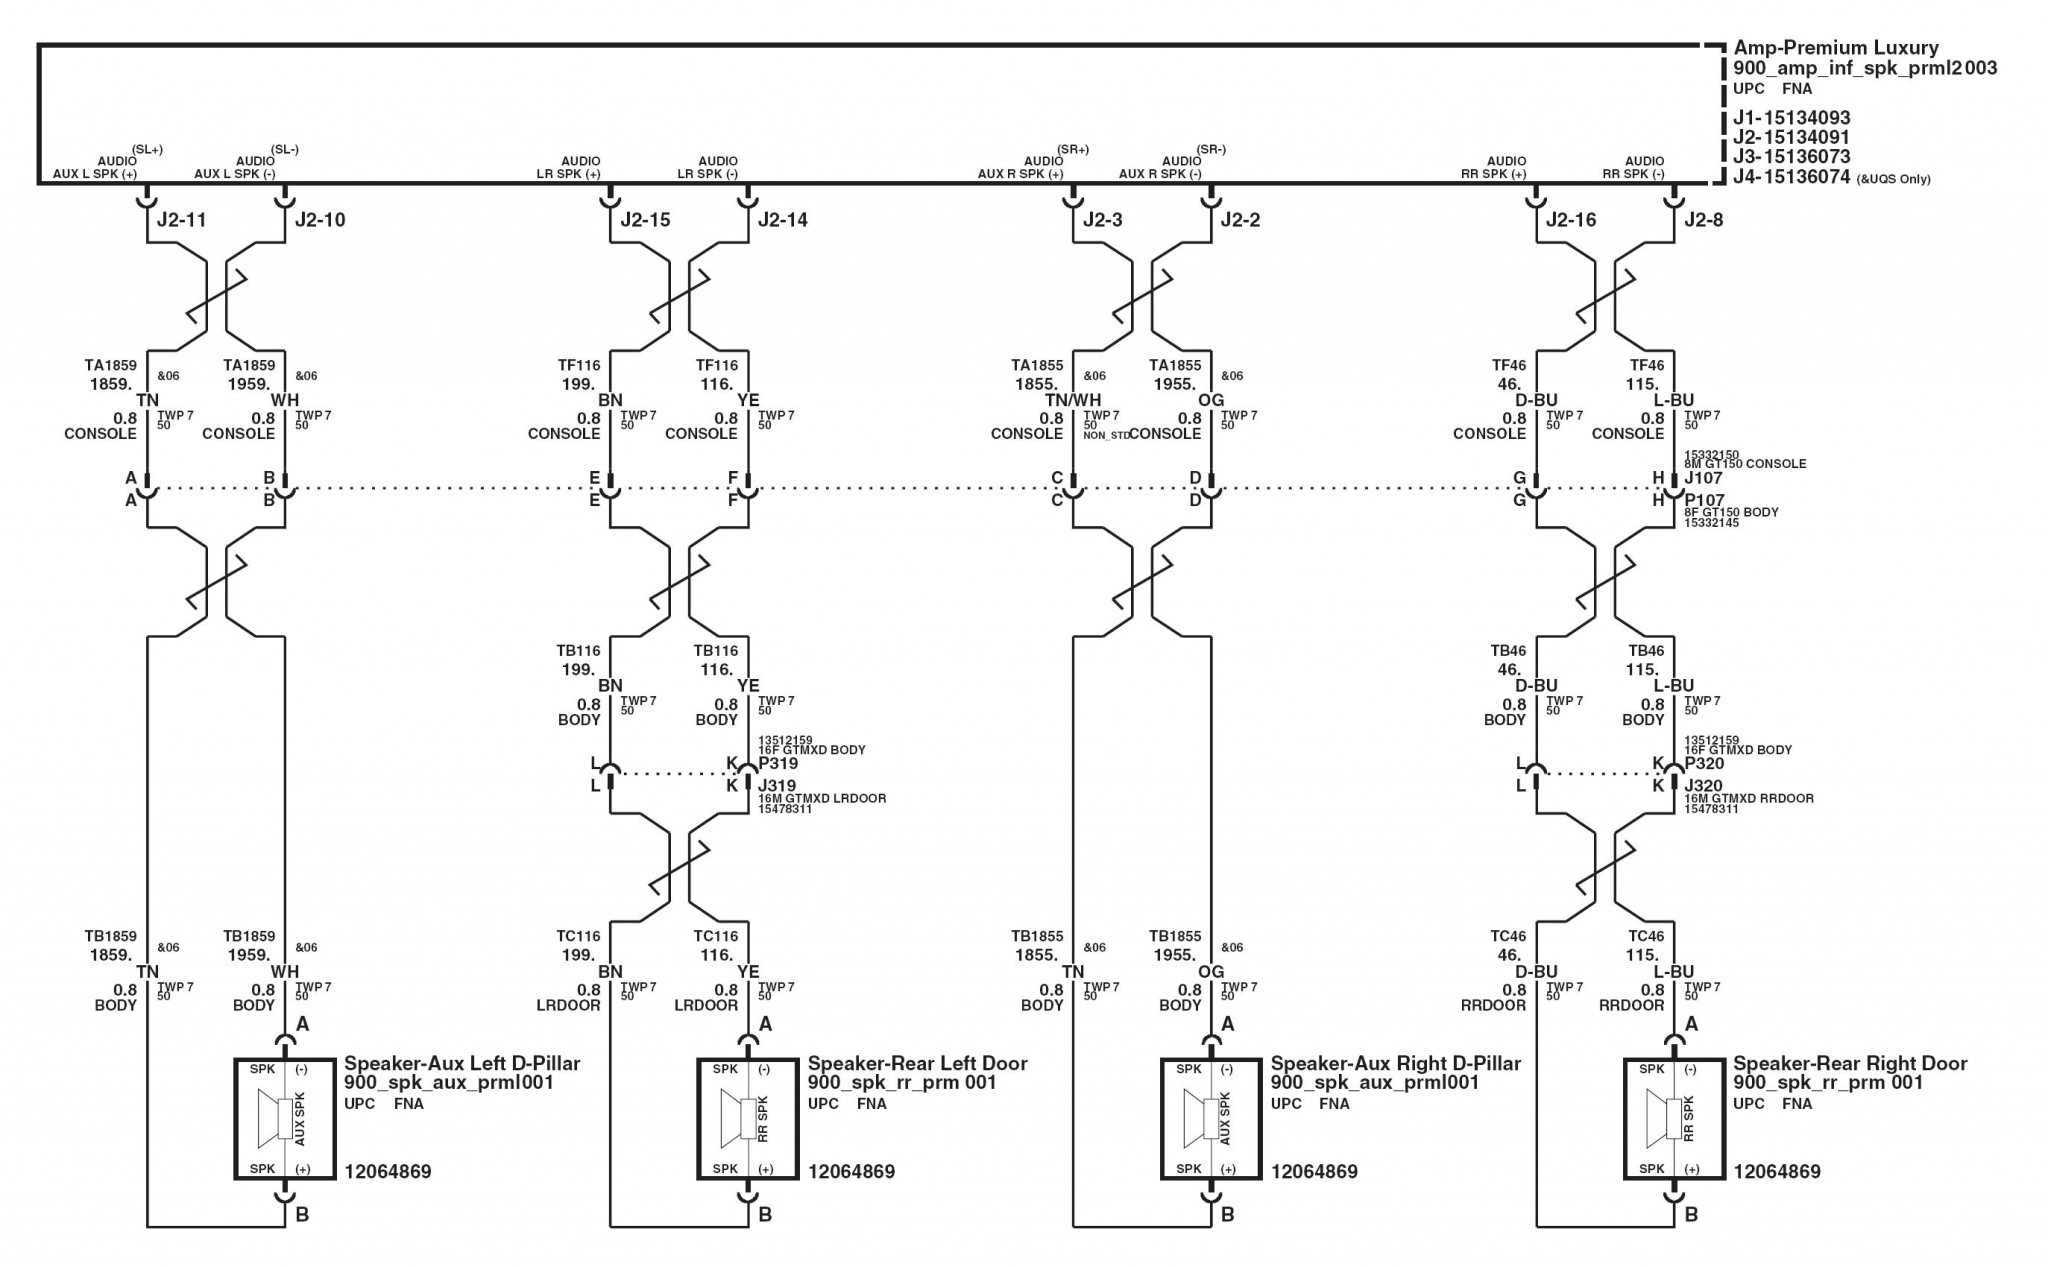 speakers rear premiumLux 2007 radio wiring chart 2007 chevy tahoe radio wiring diagram at panicattacktreatment.co